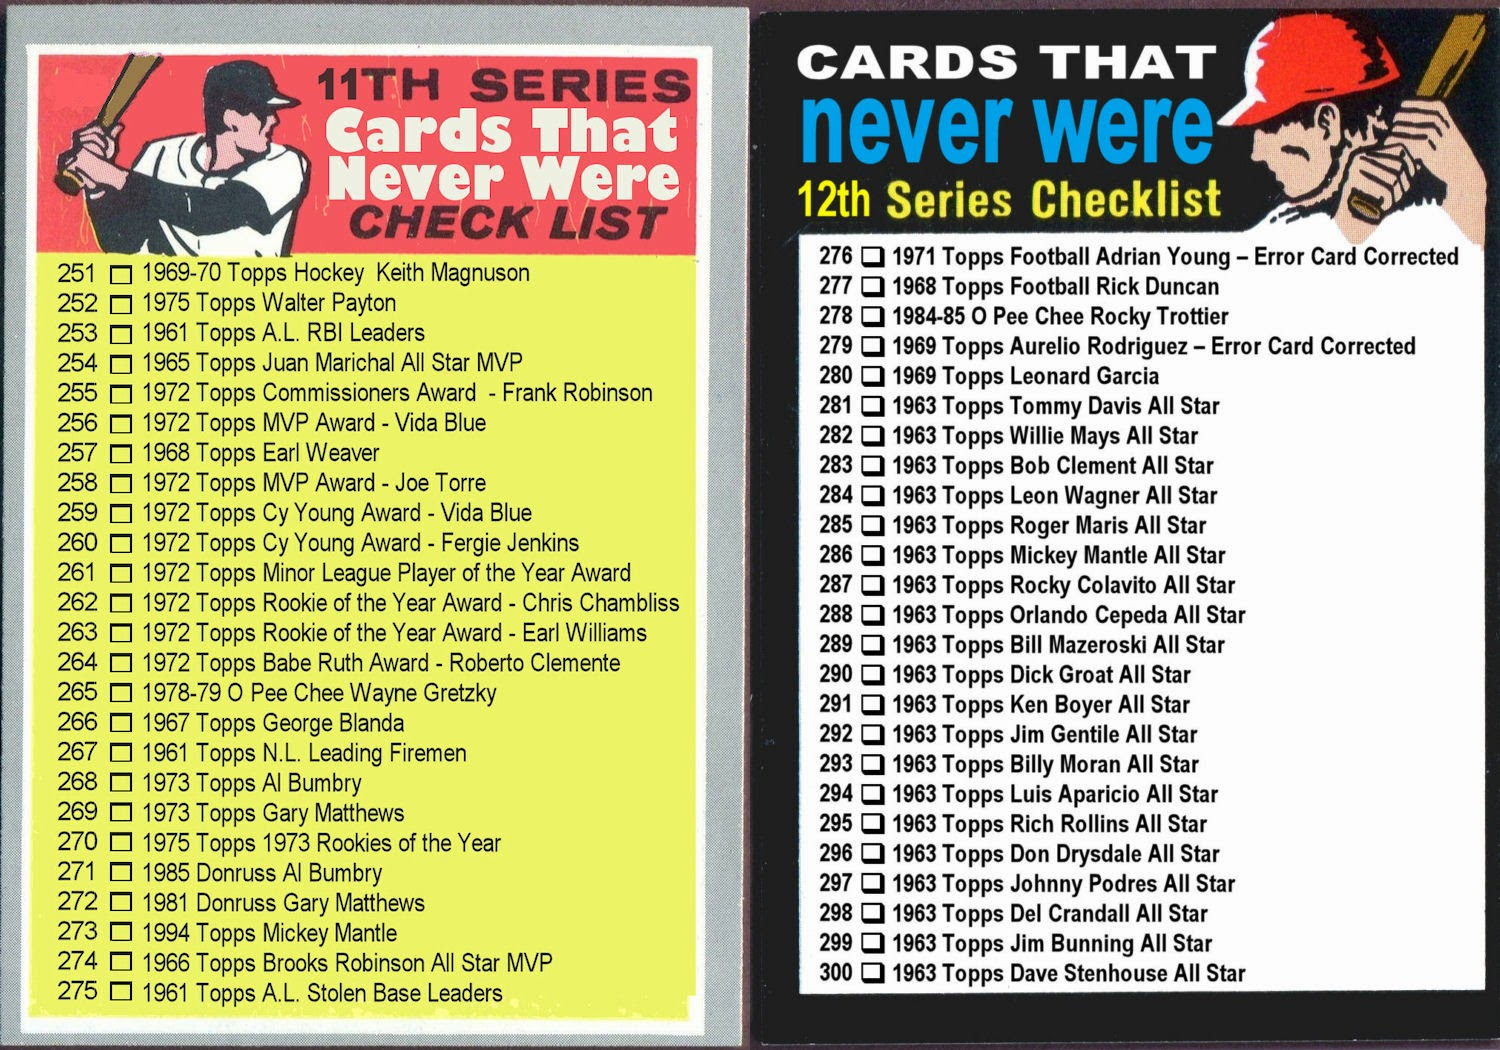 Cards 251-300